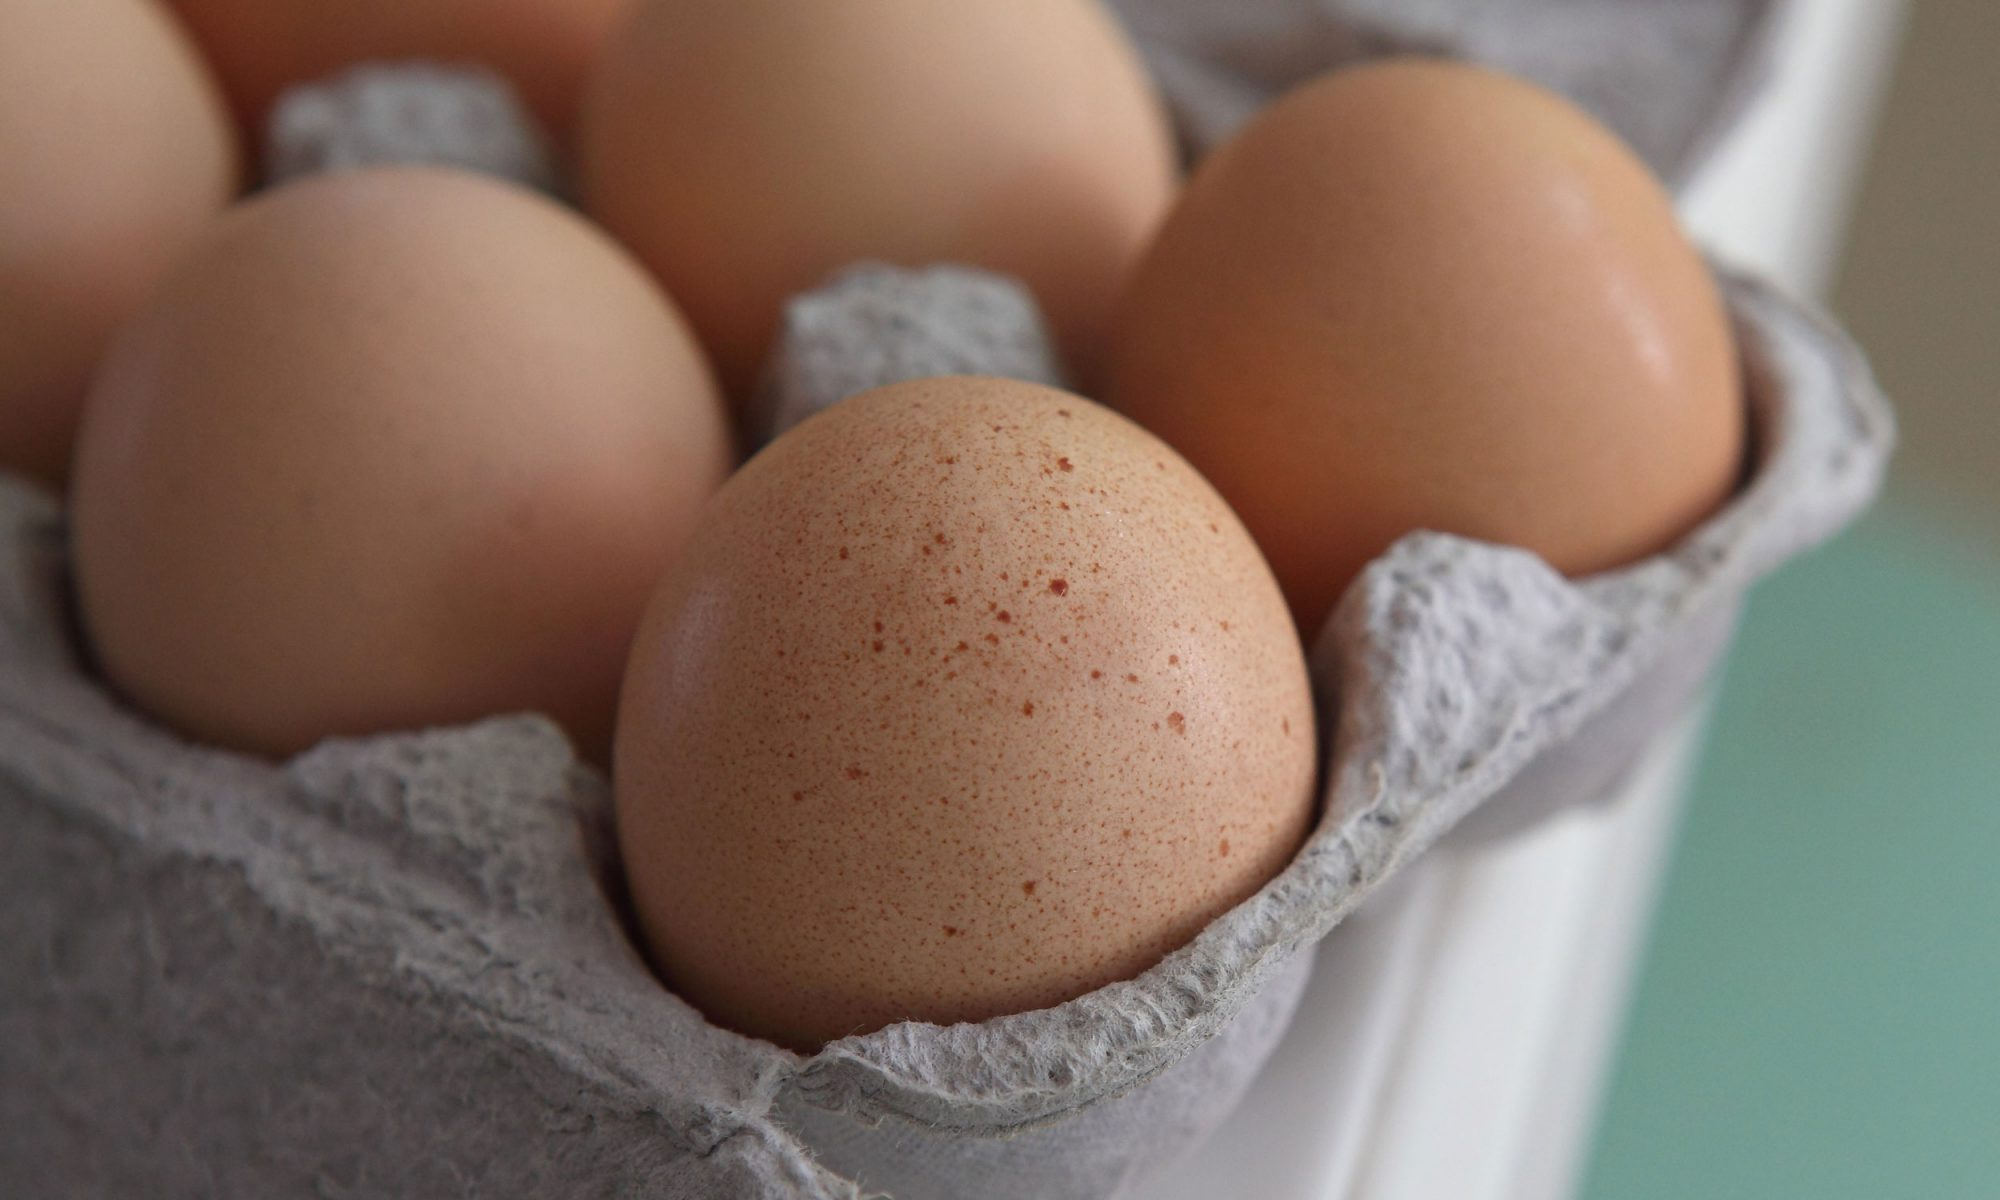 EC: How One Politician Nearly Broke the British Egg Industry